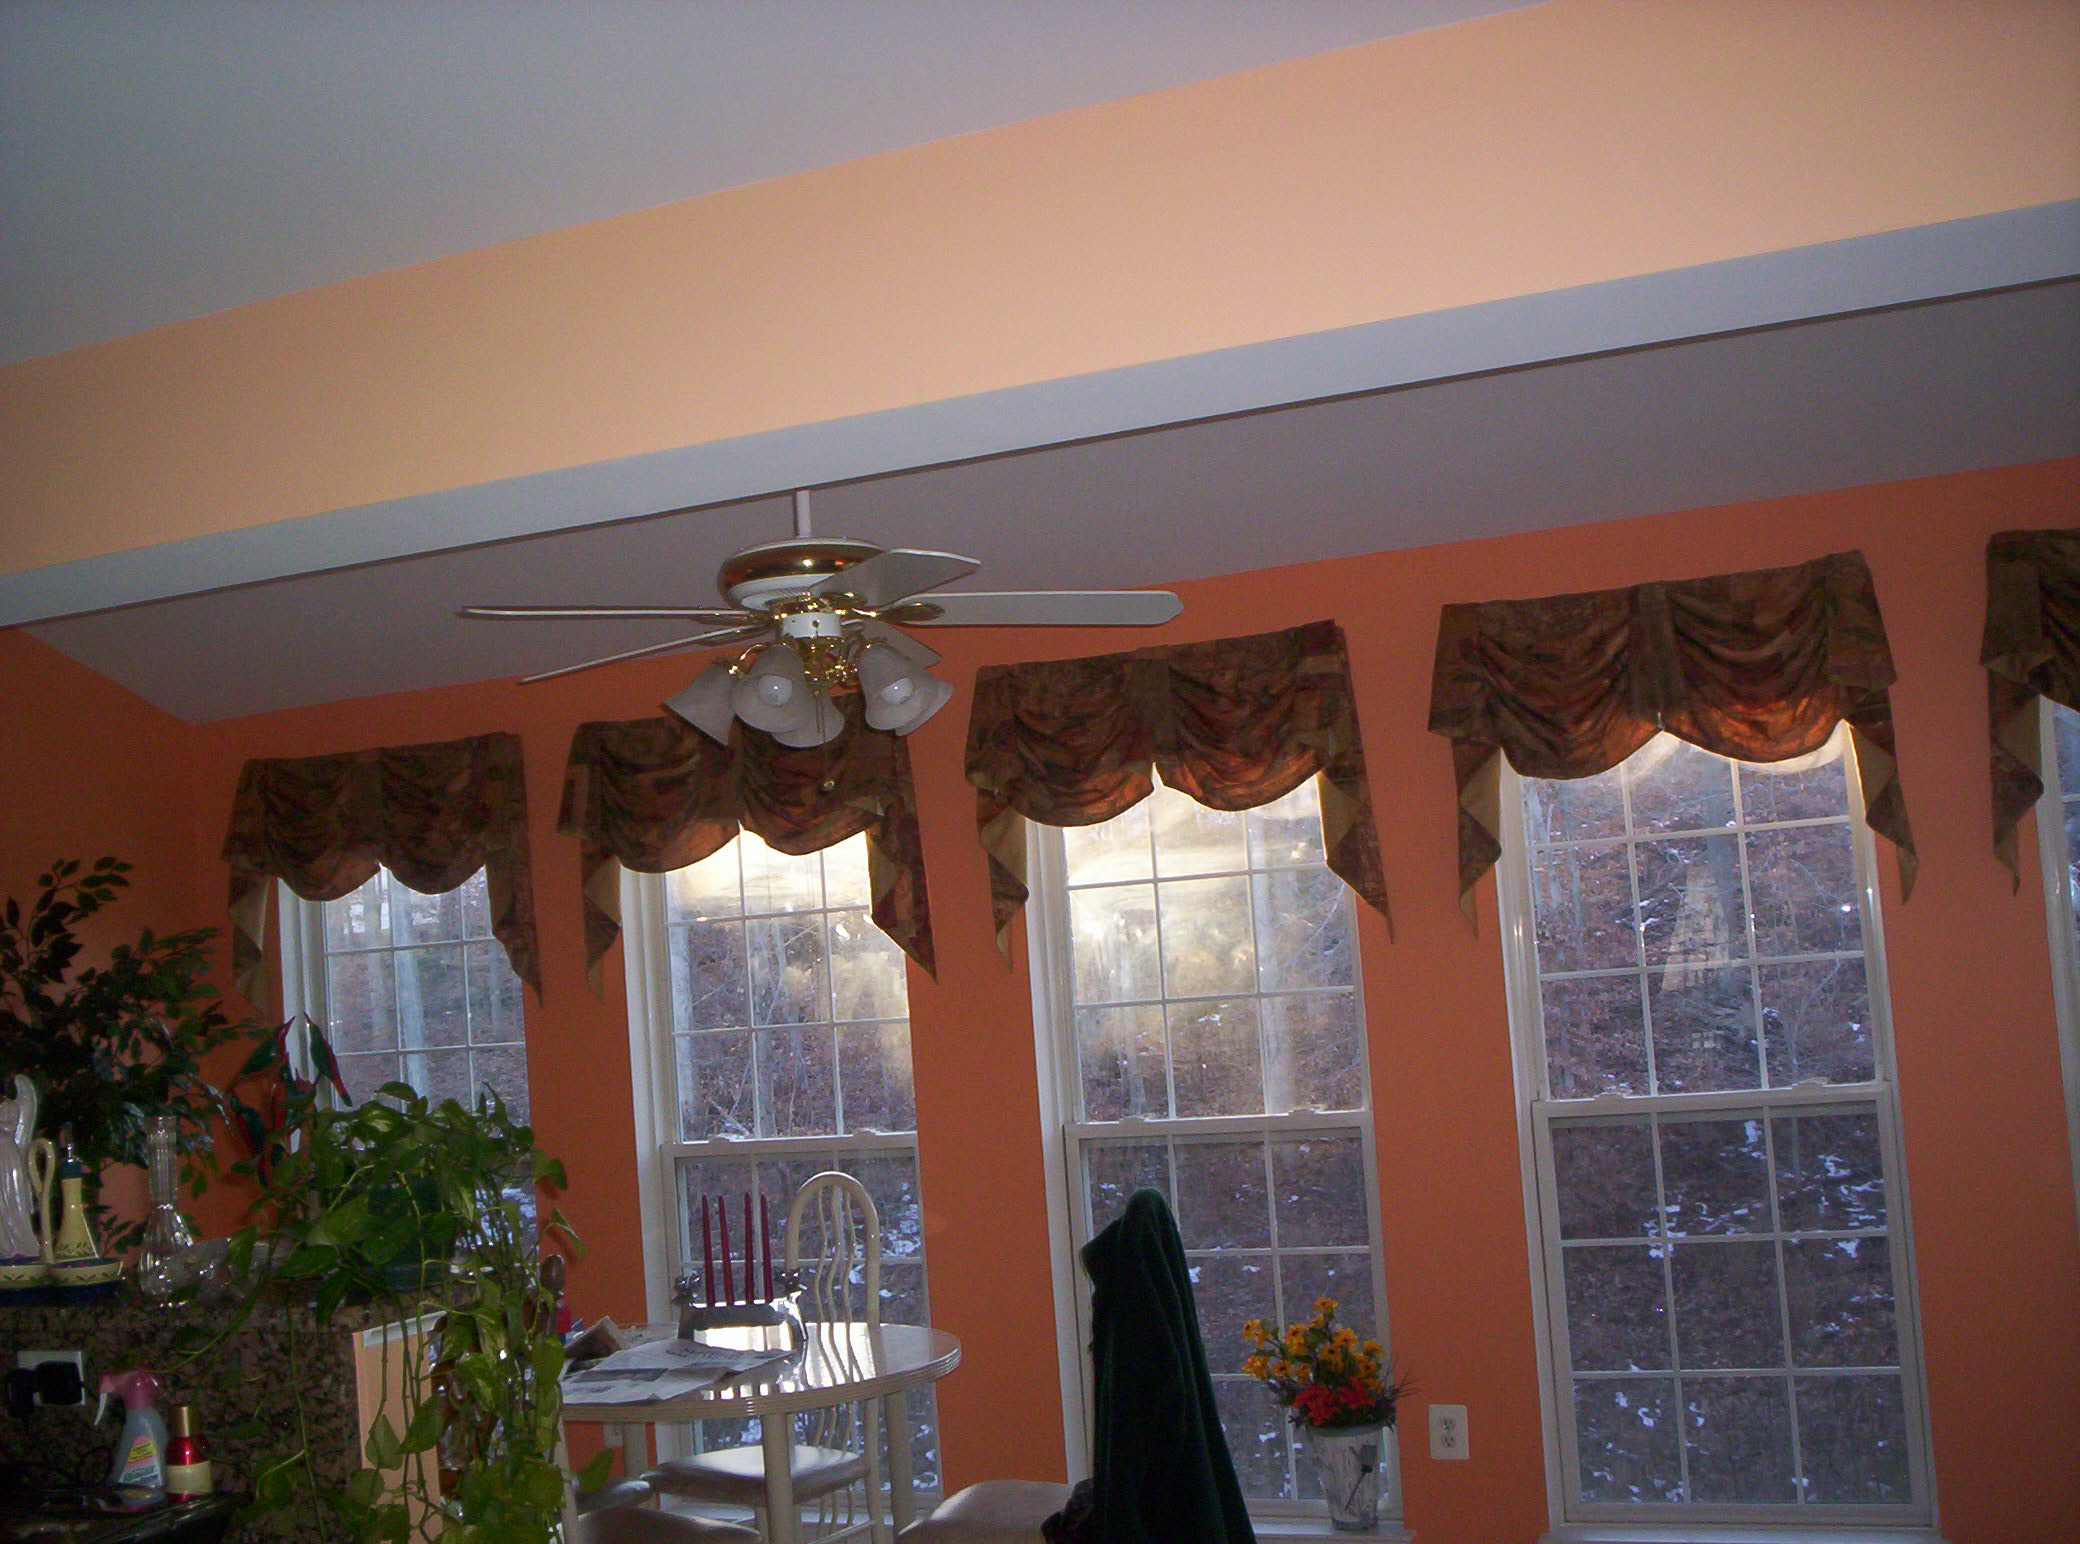 kingston valance in family room